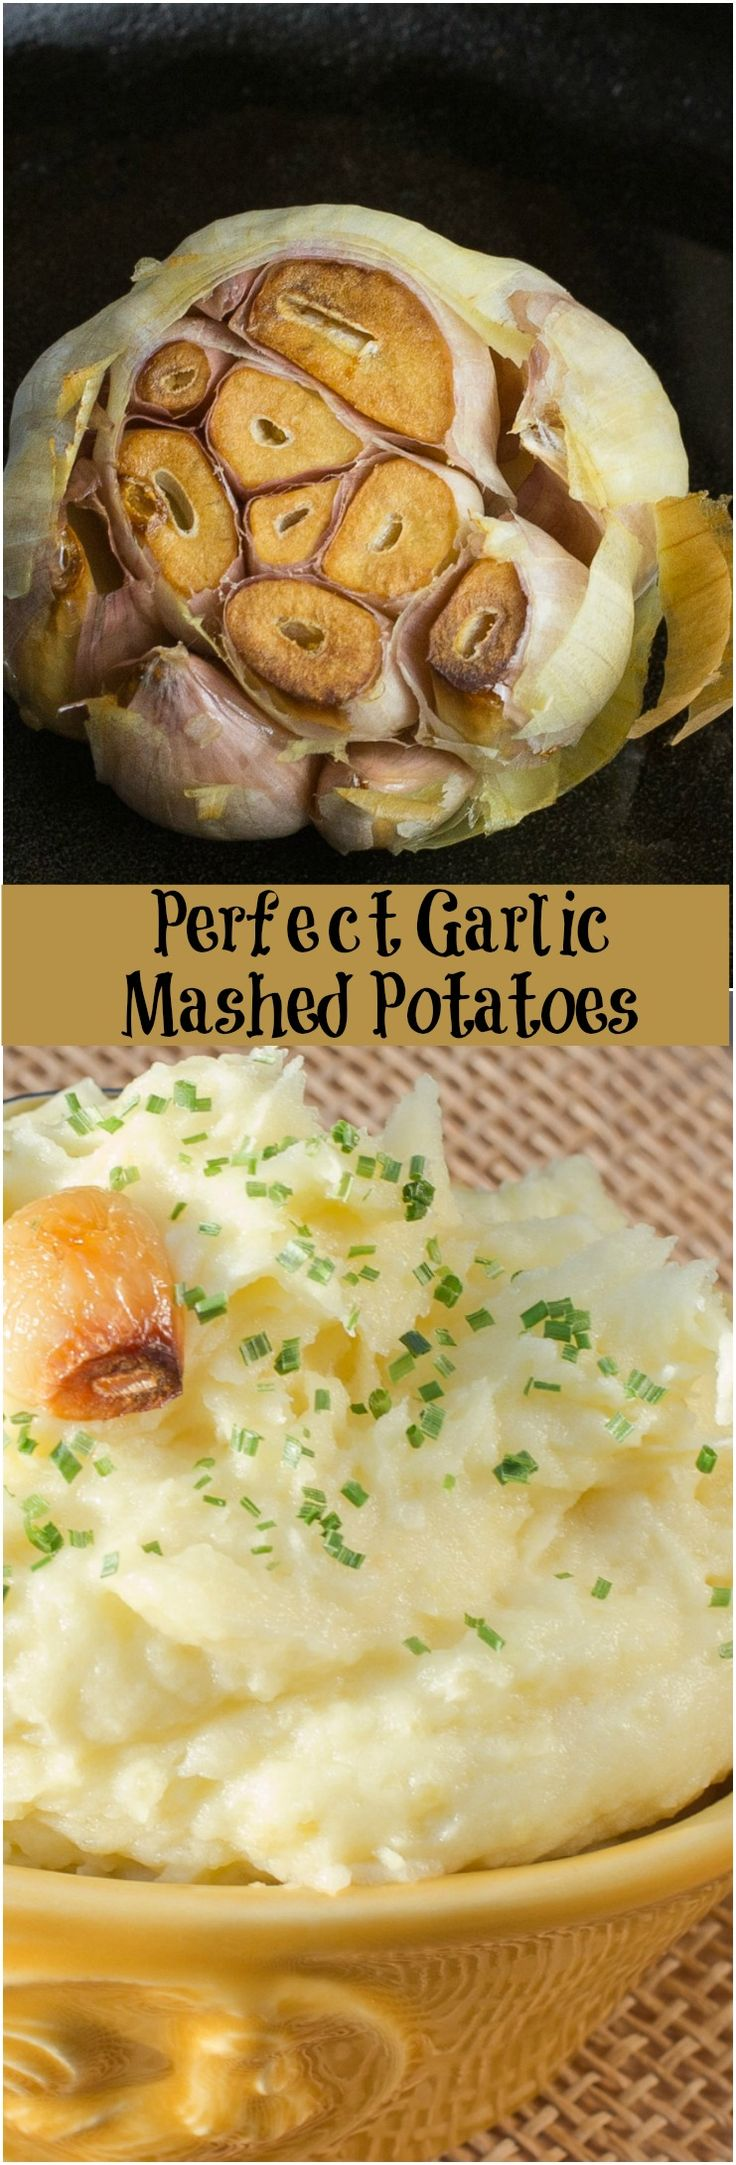 Make perfect garlic mashed potatoes every time with these easy to follow instructions.